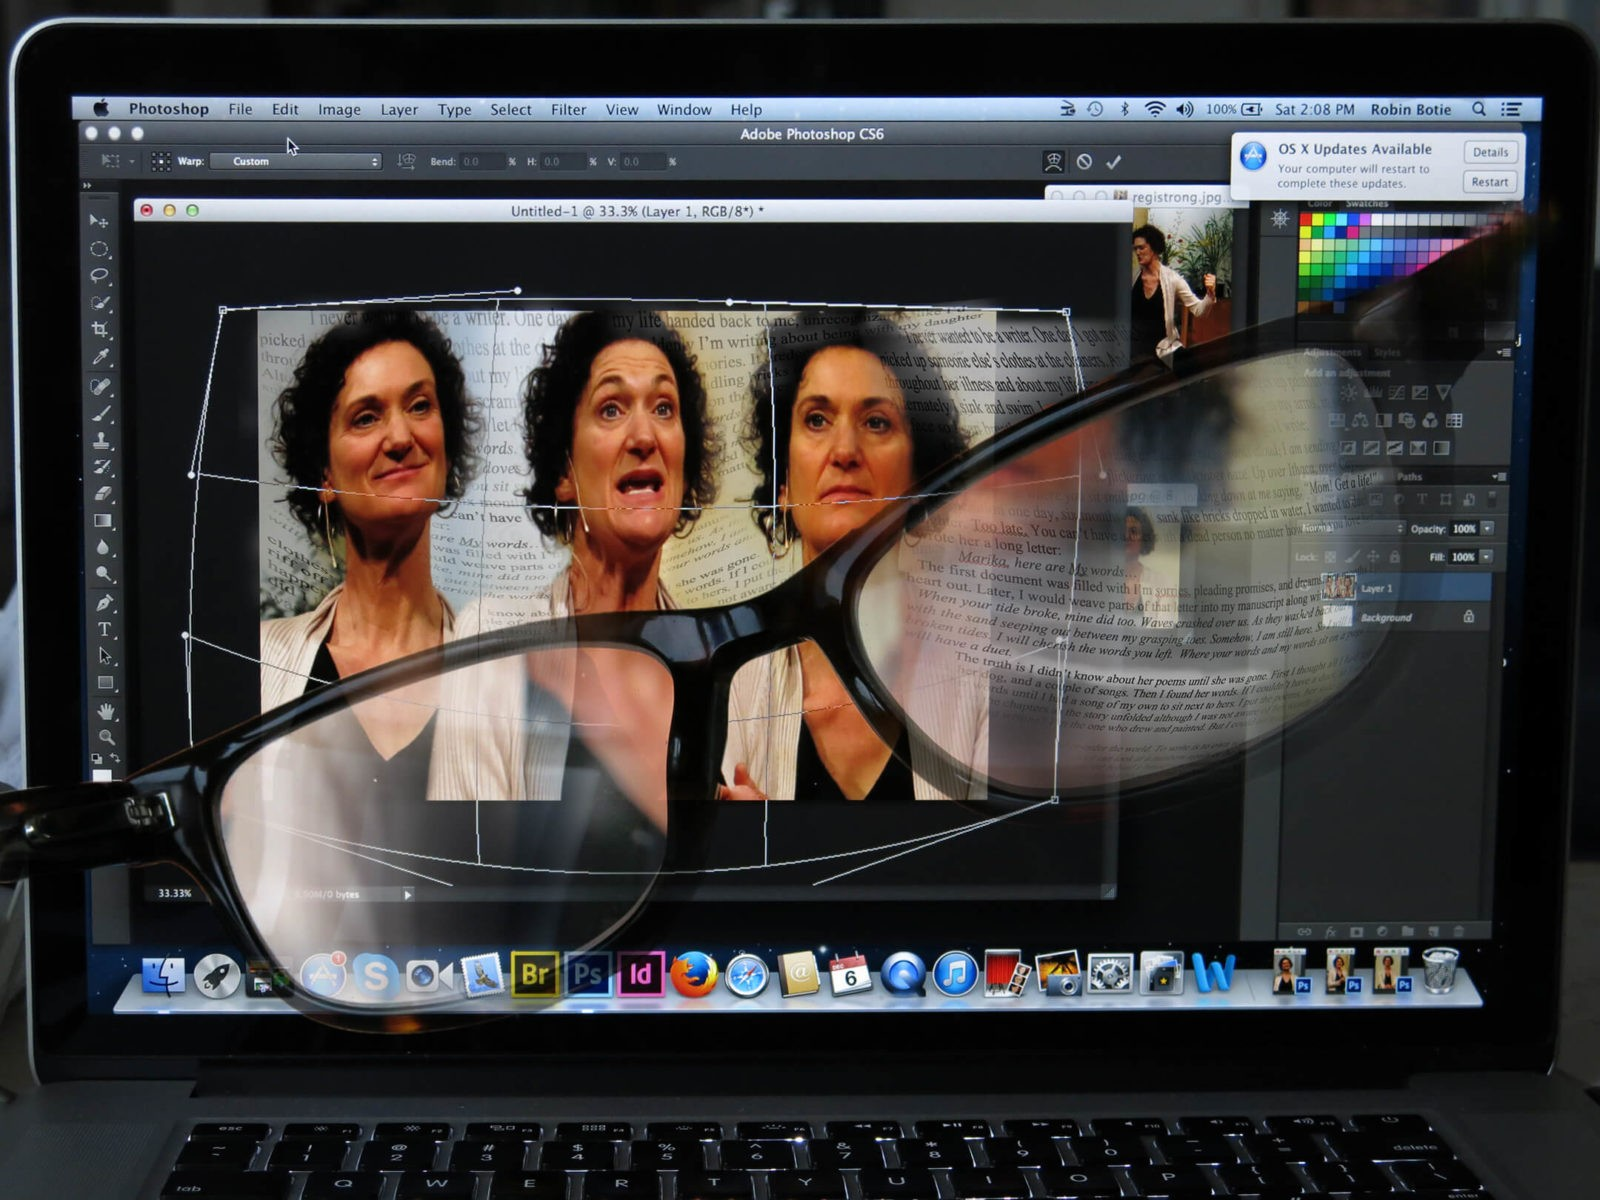 Using progressive eyeglasses, Robin botie of Ithaca, New York, photoshops multiple images of storyteller Regi Carpenter who suffered memory losses before her decent into mental illness.